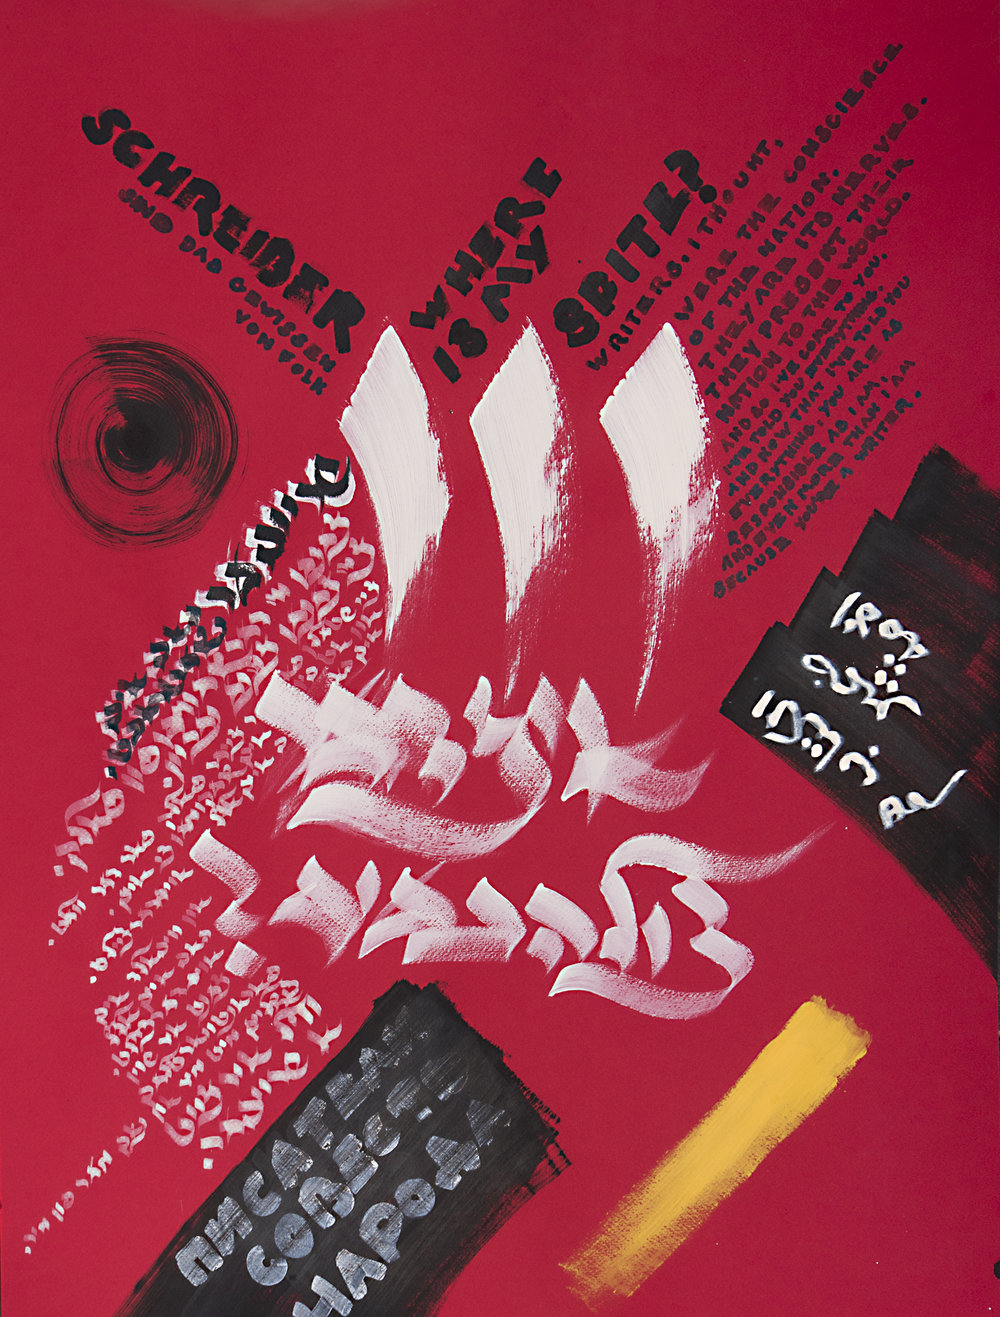 Among Refugees Generation Y - Yiddish Prose as Multilingual Calligraphy in the Public Space of BerlinConcept & Process